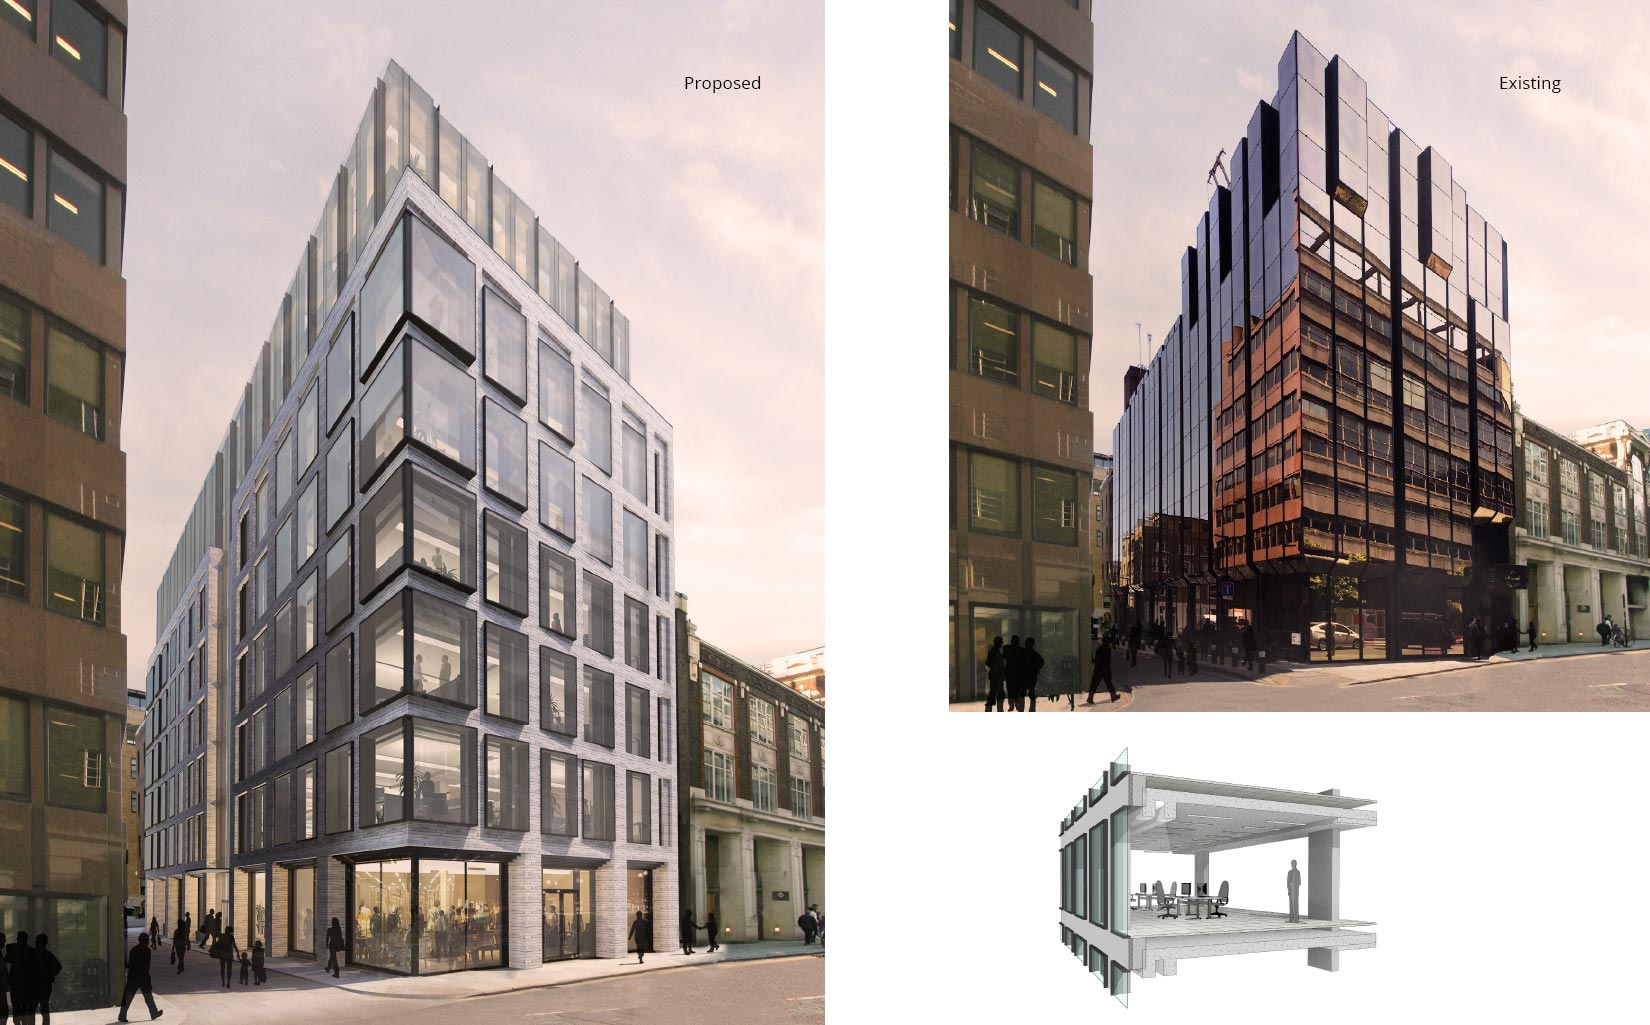 182 High Holborn, Covent Garden, London, Existing & Proposed